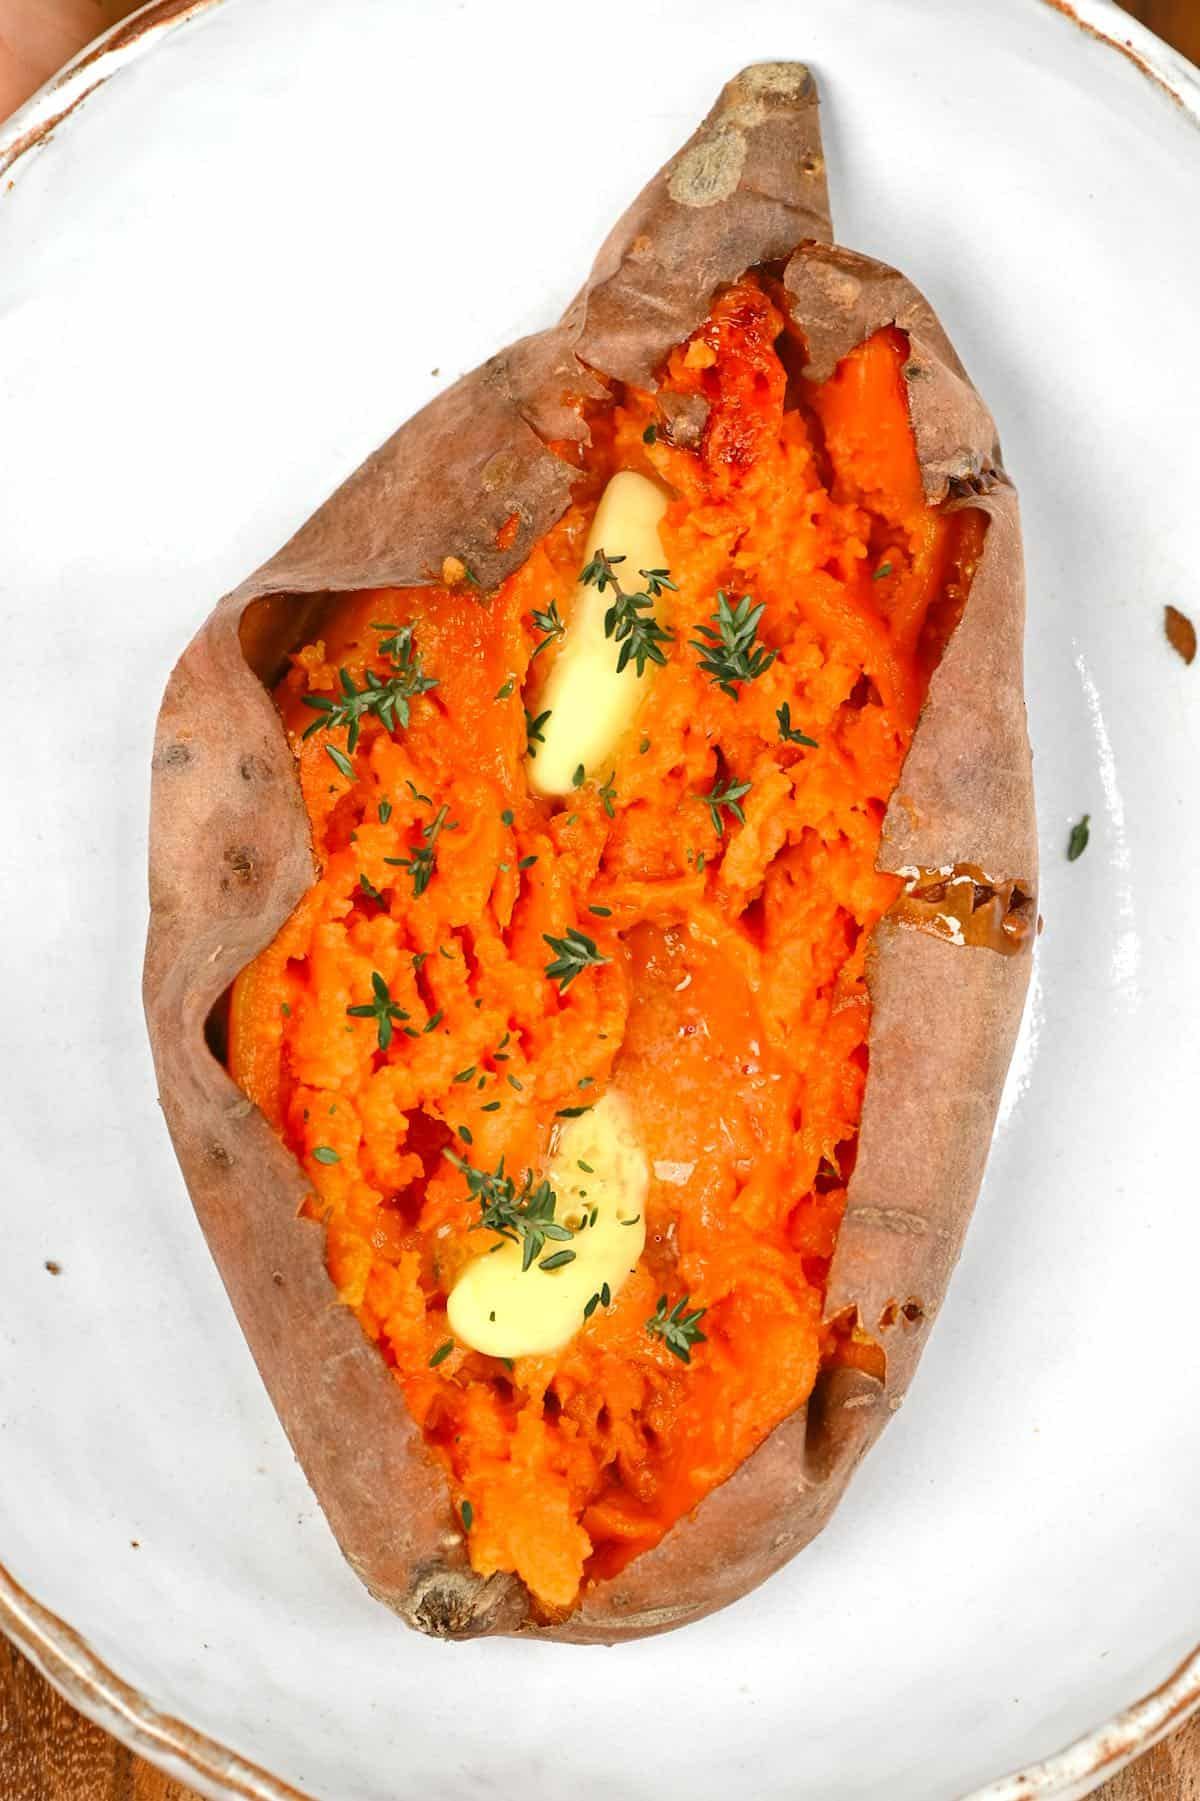 Baked sweet potato with some butter and thyme